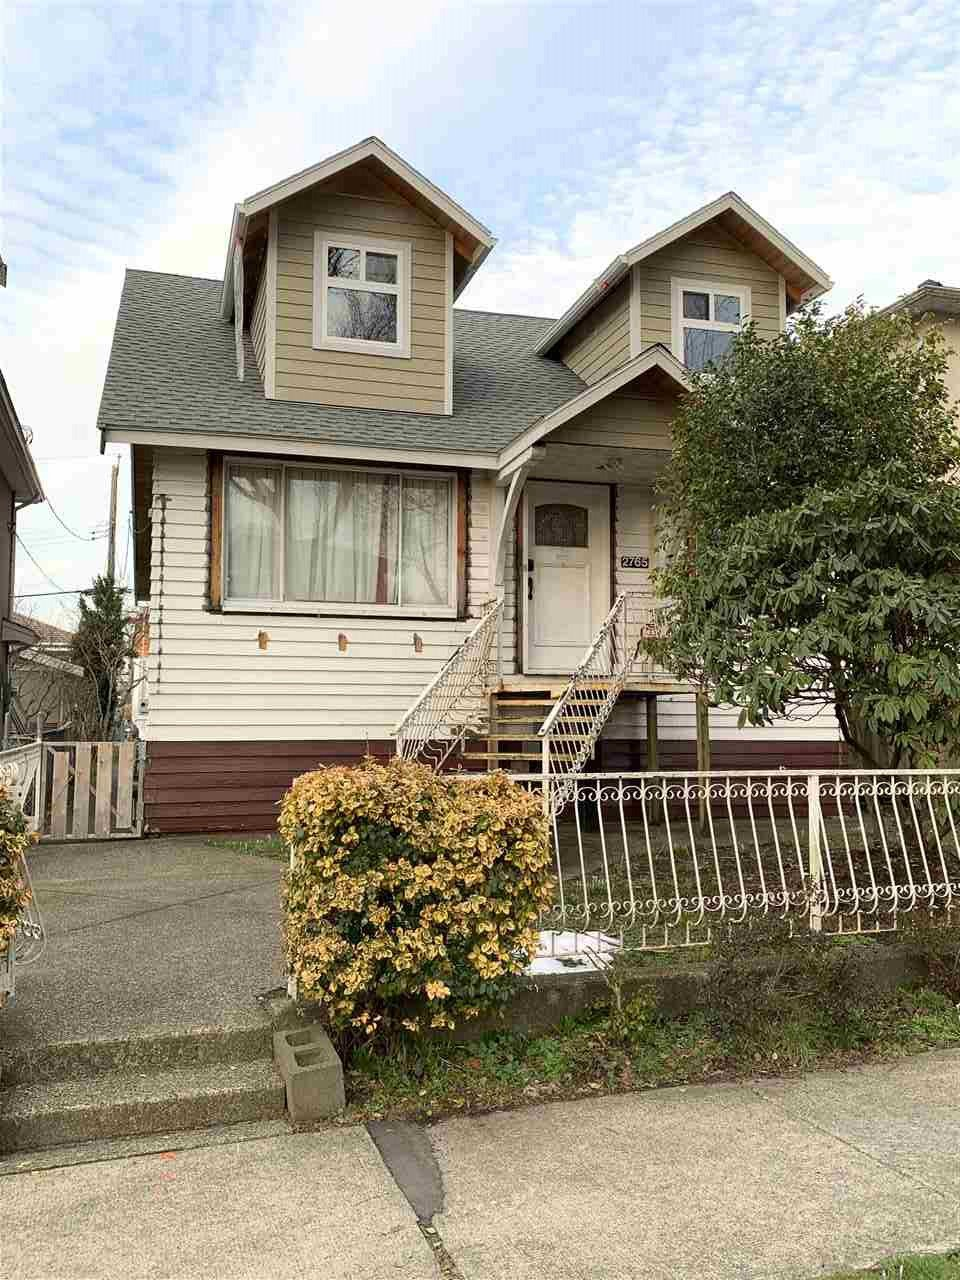 Main Photo: 2765 E 27TH Avenue in Vancouver: Renfrew Heights House for sale (Vancouver East)  : MLS®# R2436528